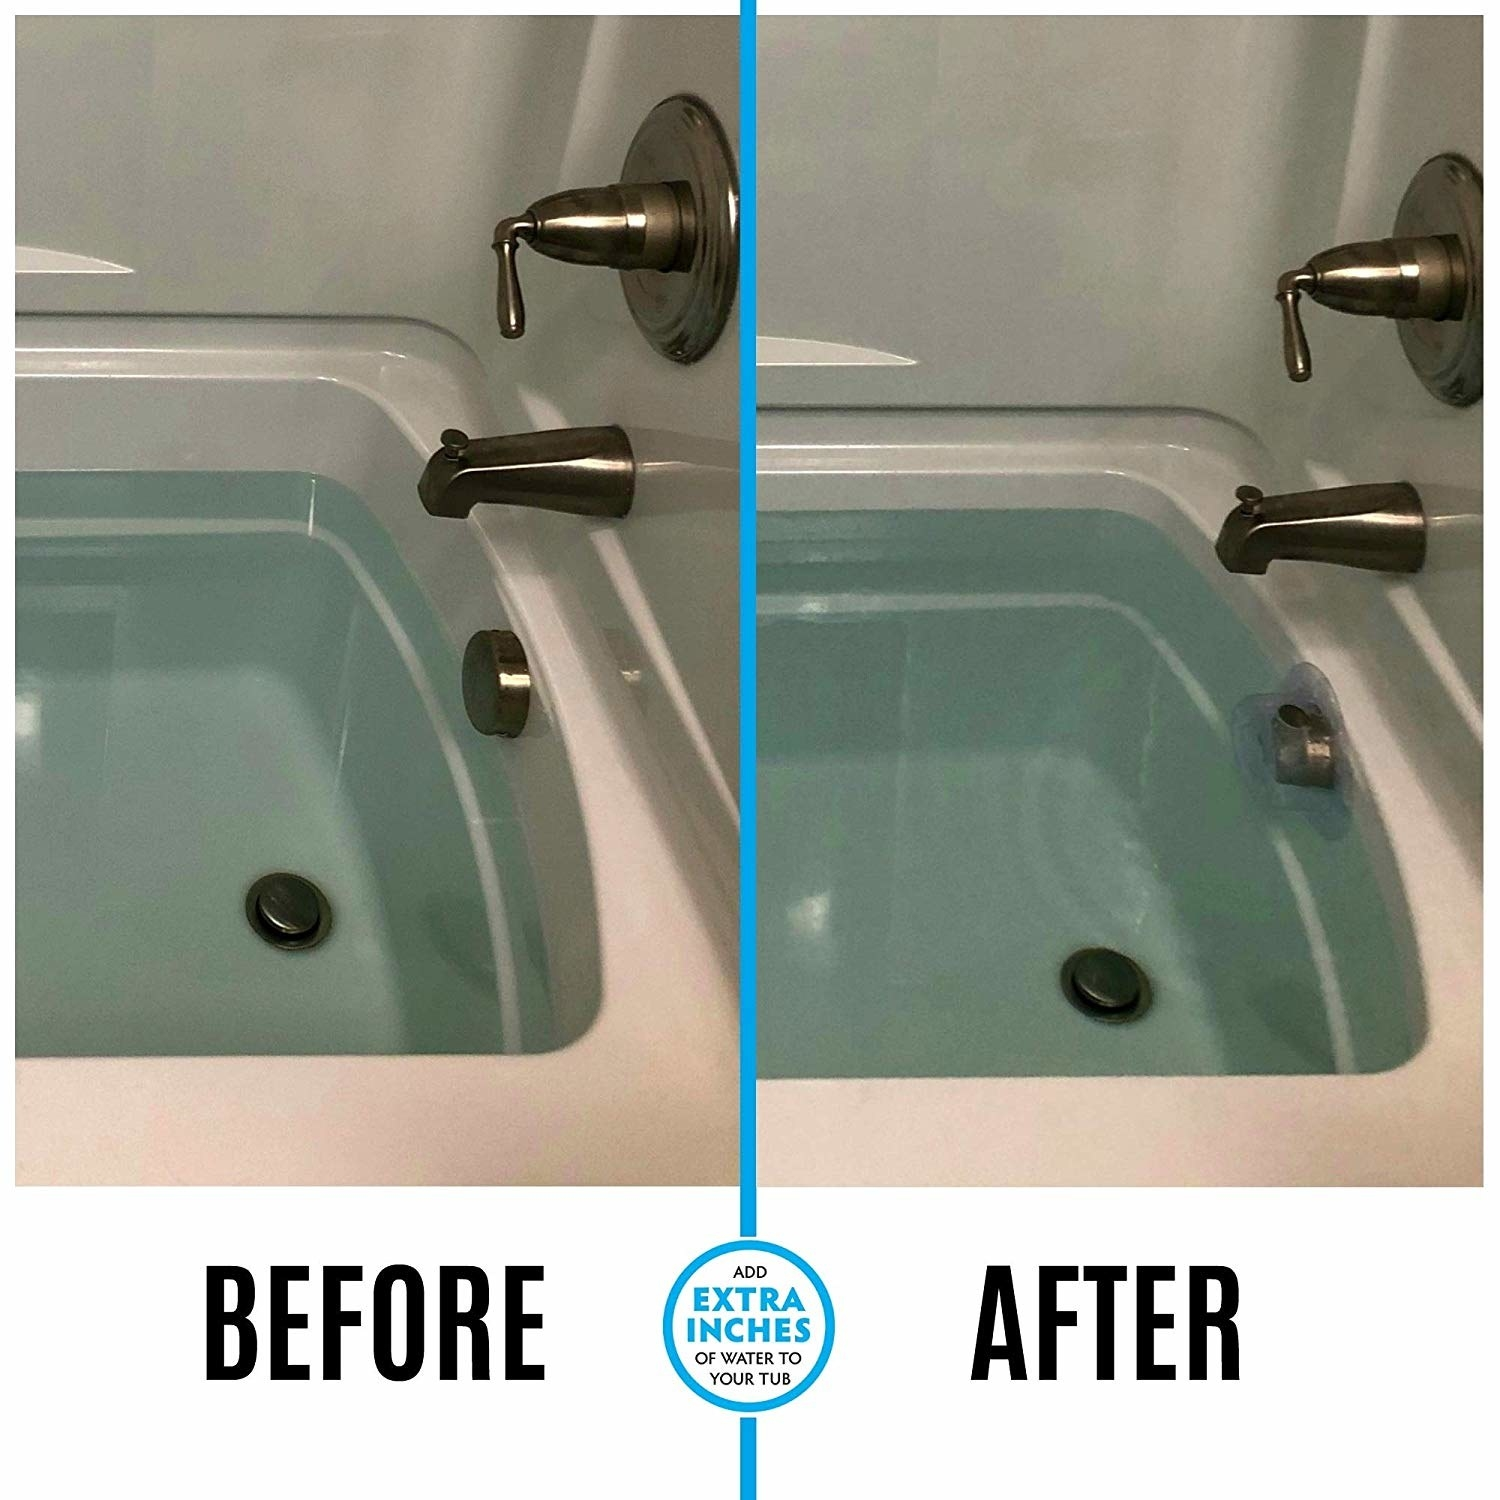 "Promising review: ""Can I give this thing 10 gold stars? I have a four-foot bathtub (so small it should be illegal) so I used to bring a towel in the tub to cover myself just to keep warm because the water was so shallow. I've used this drain cover three times and now I literally bask in my Epsom salt baths. The silence is wonderful; I used to seethe at hearing the precious bath water drip-drop down the overflow drain. Buy it, hands down a peace preserver."" —M. SmithGet it from Amazon for $8.99."